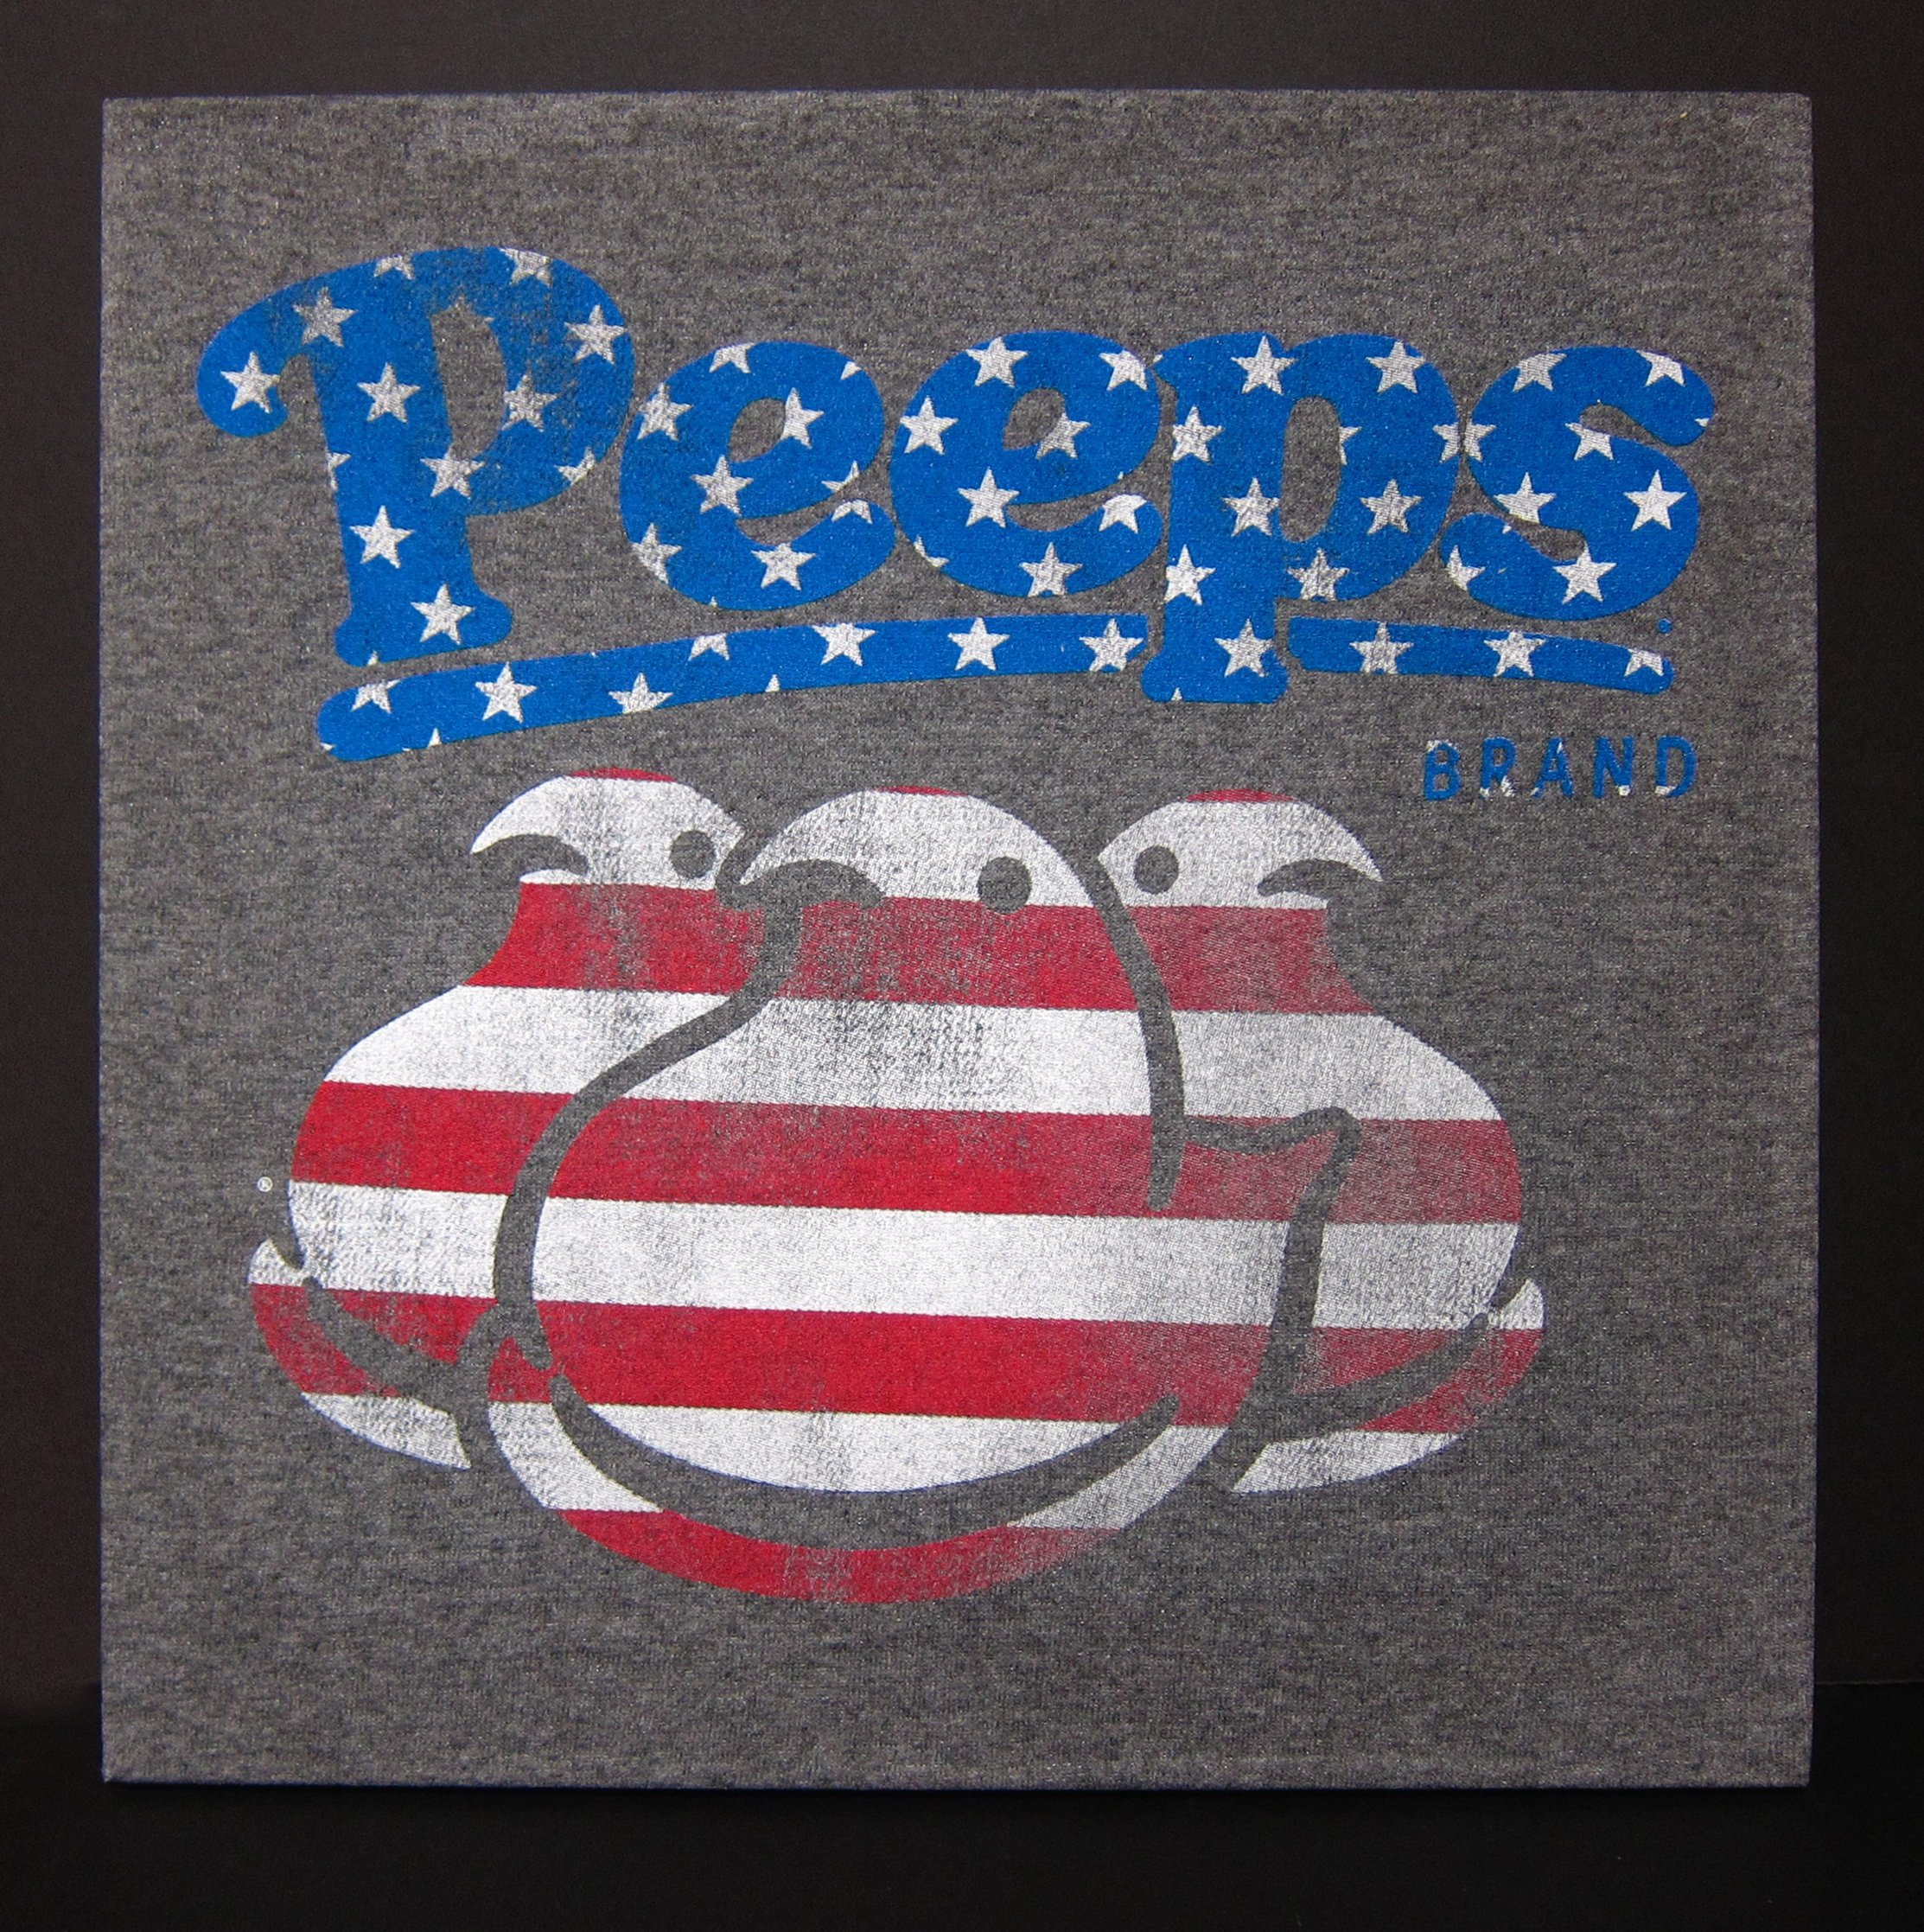 Retro style Peeps T-shirt Upcycled to make a one of a kind wall hanging! America's favorite Easter candy in the stars and stripes. Peeps!